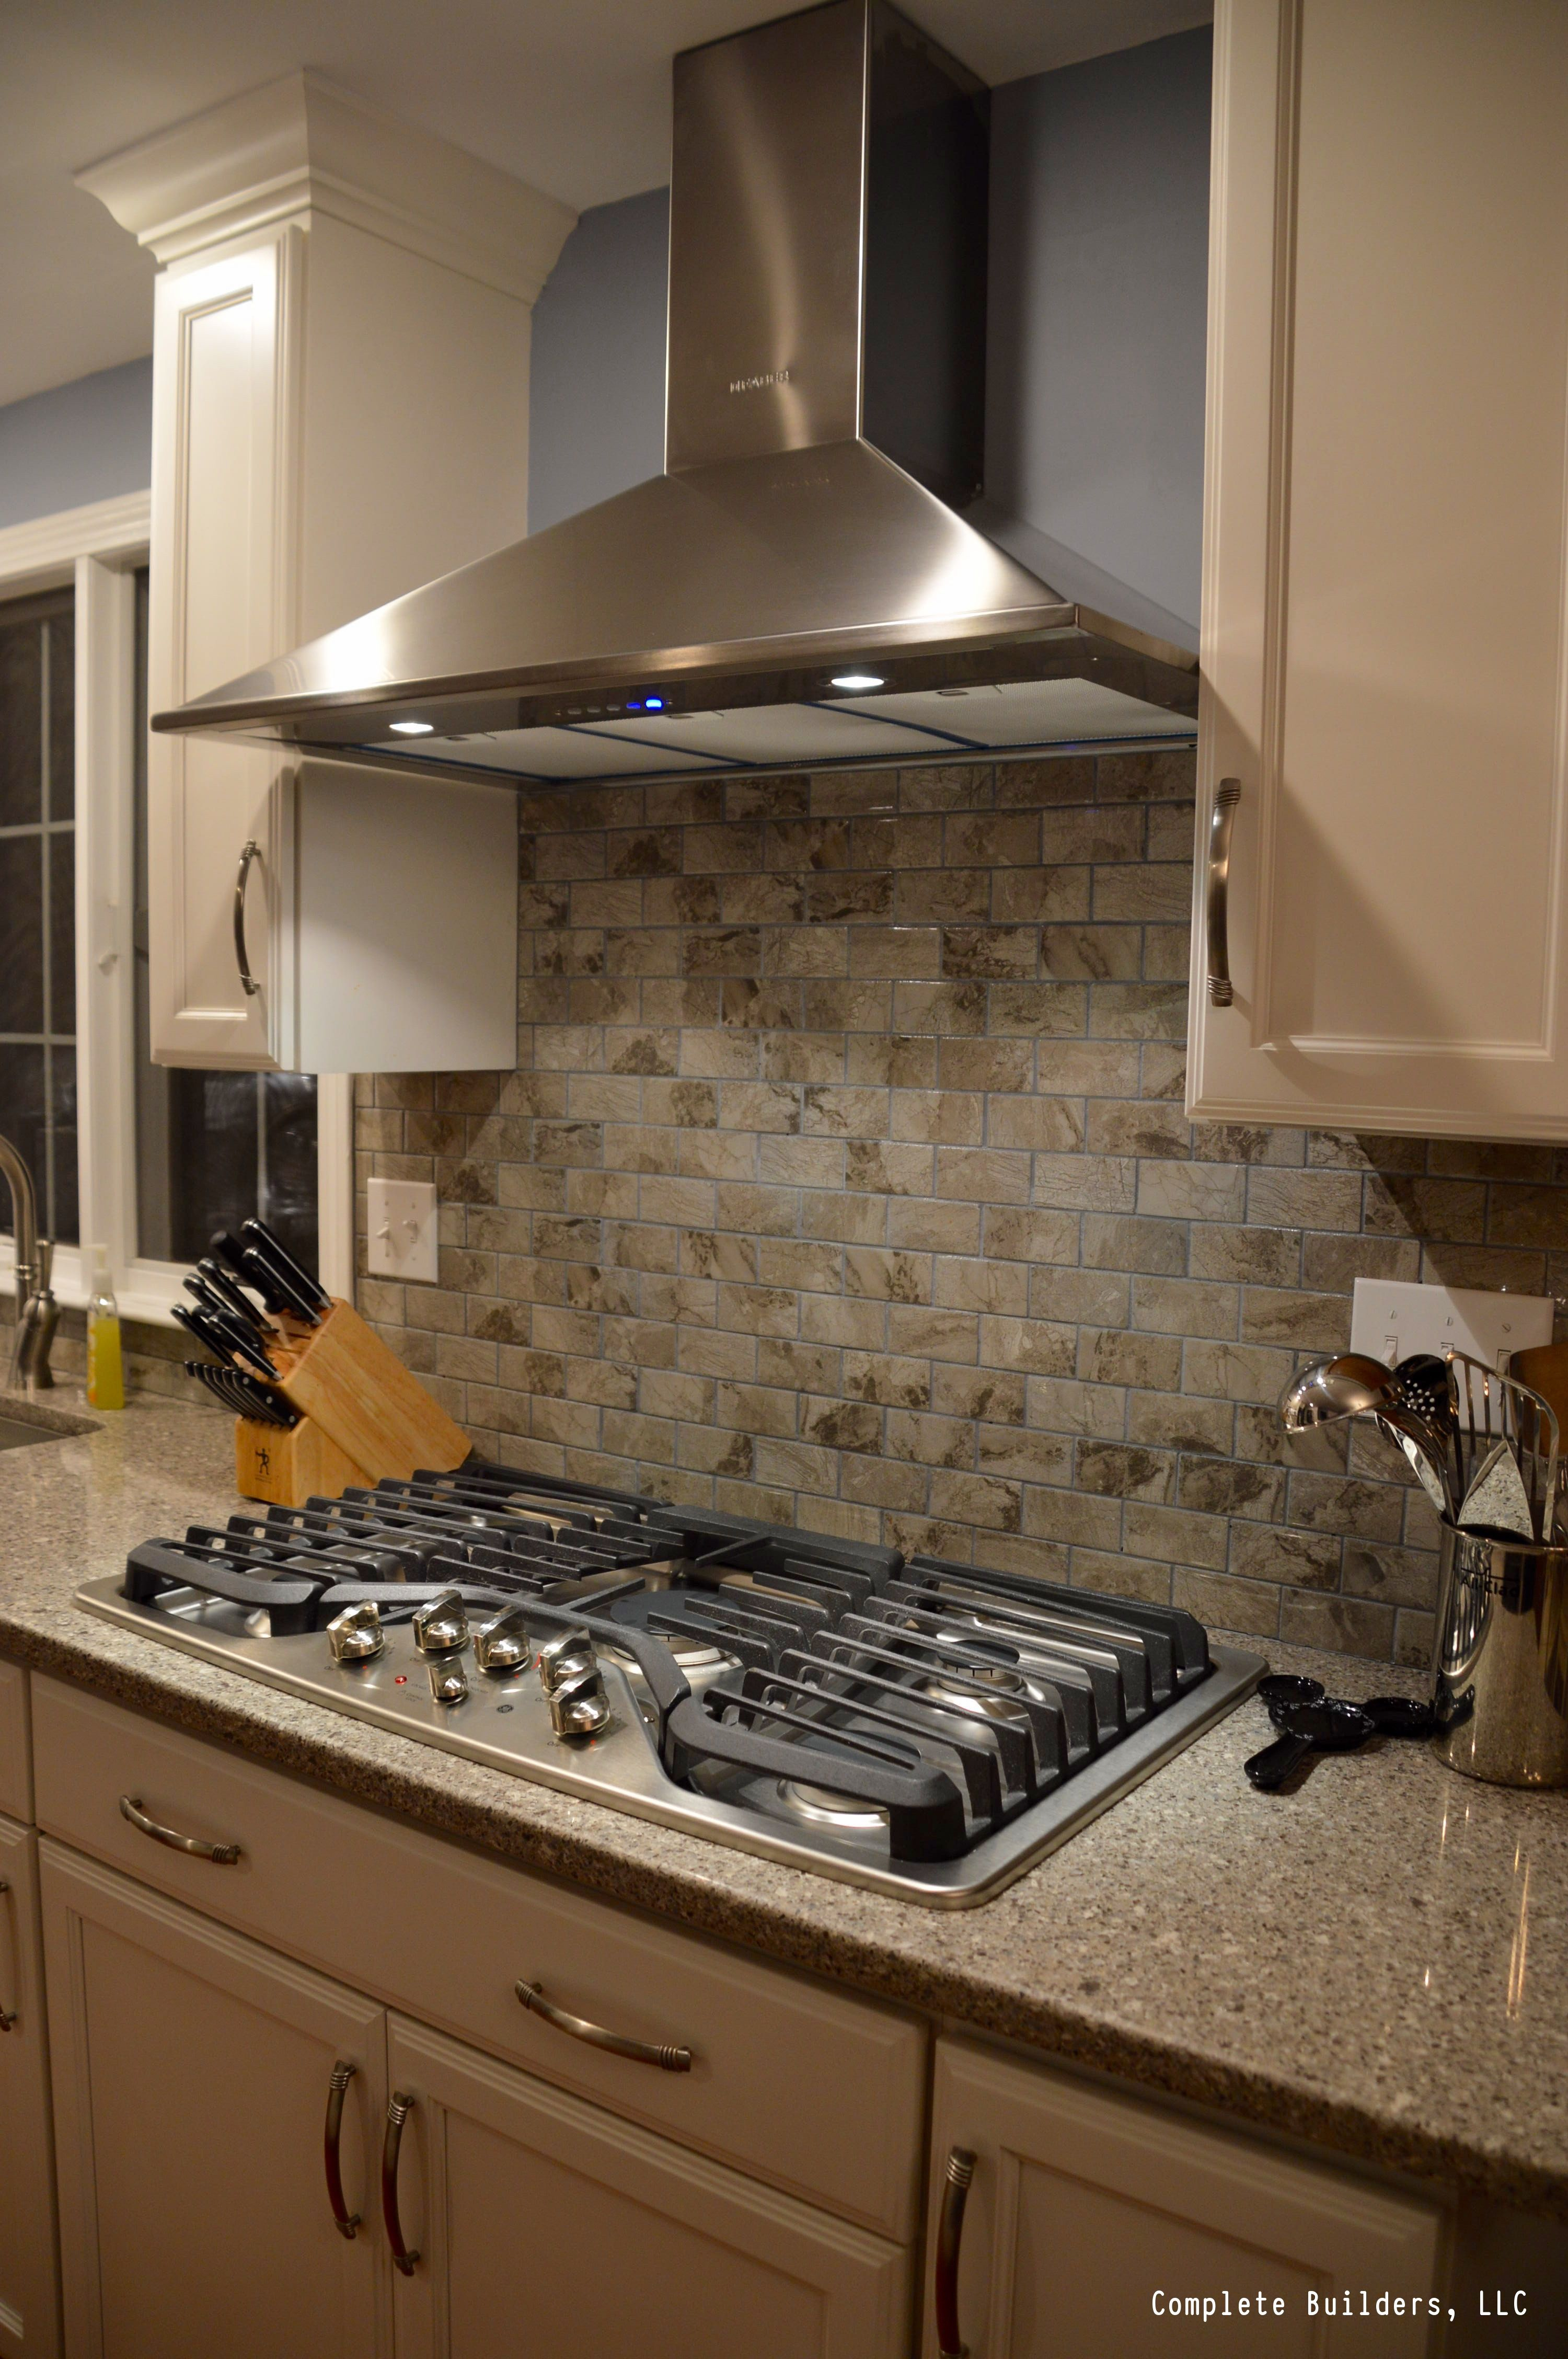 Types Of Kitchen Countertops Island On Wheels 2016 Countertop Trends Kitchens And